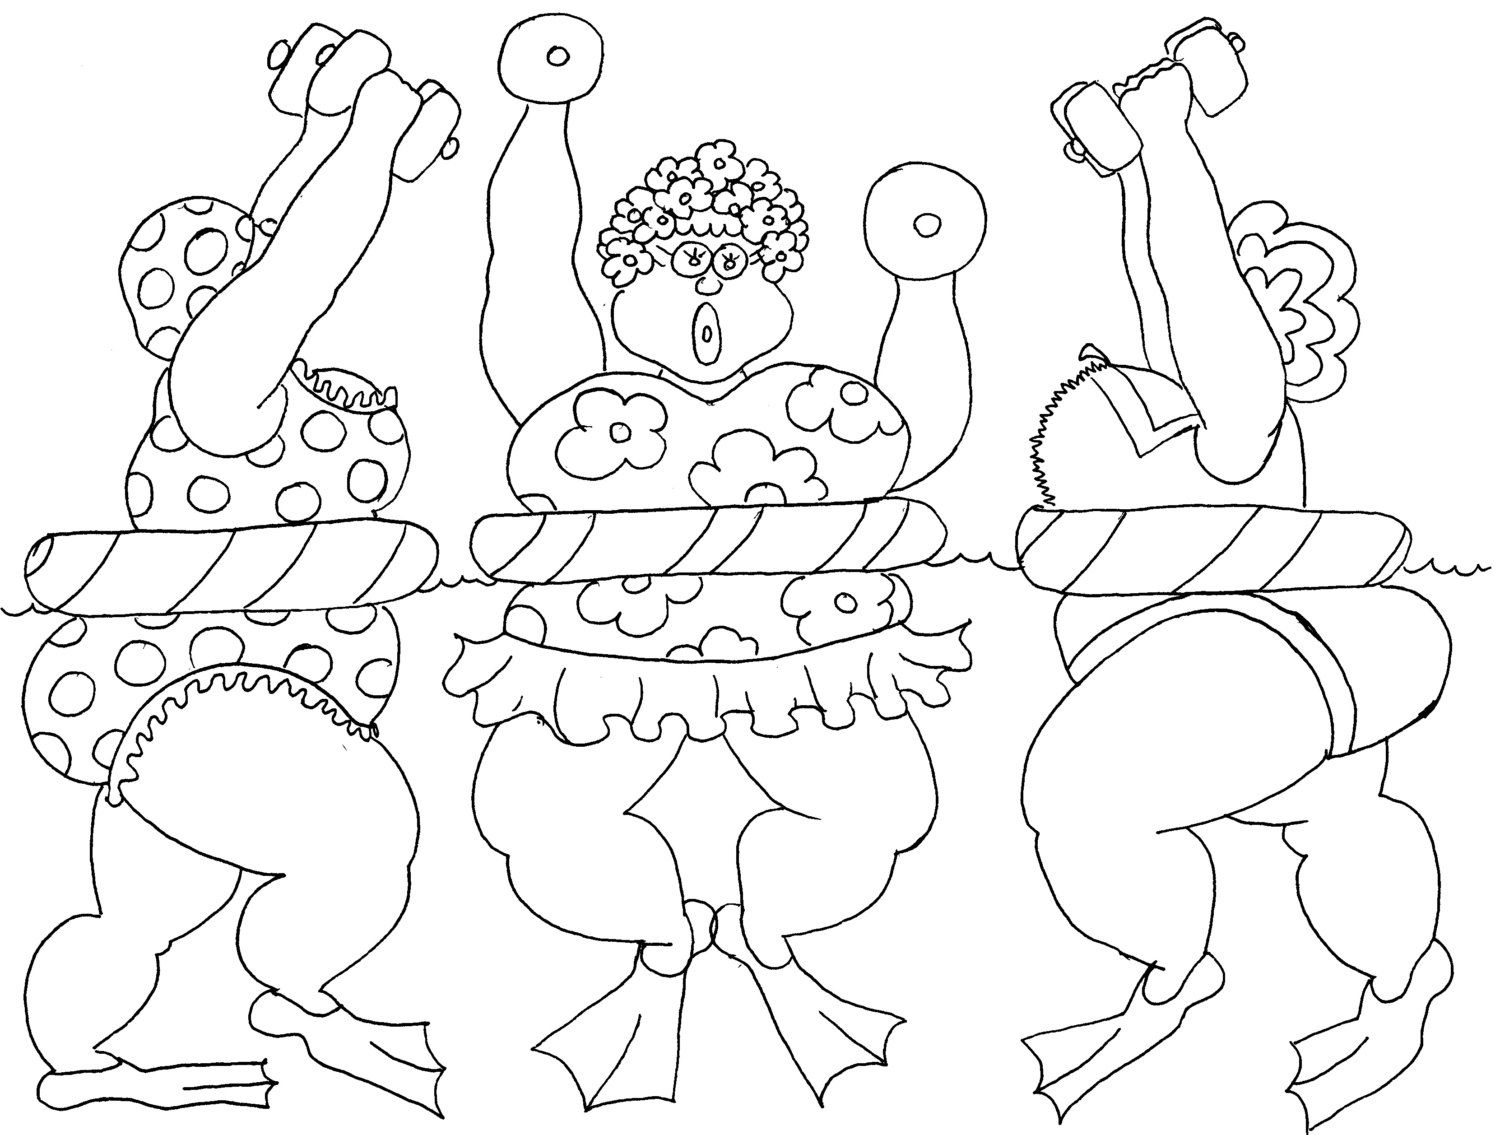 aqua fit ladies funny coloring page by chubby art cartoons